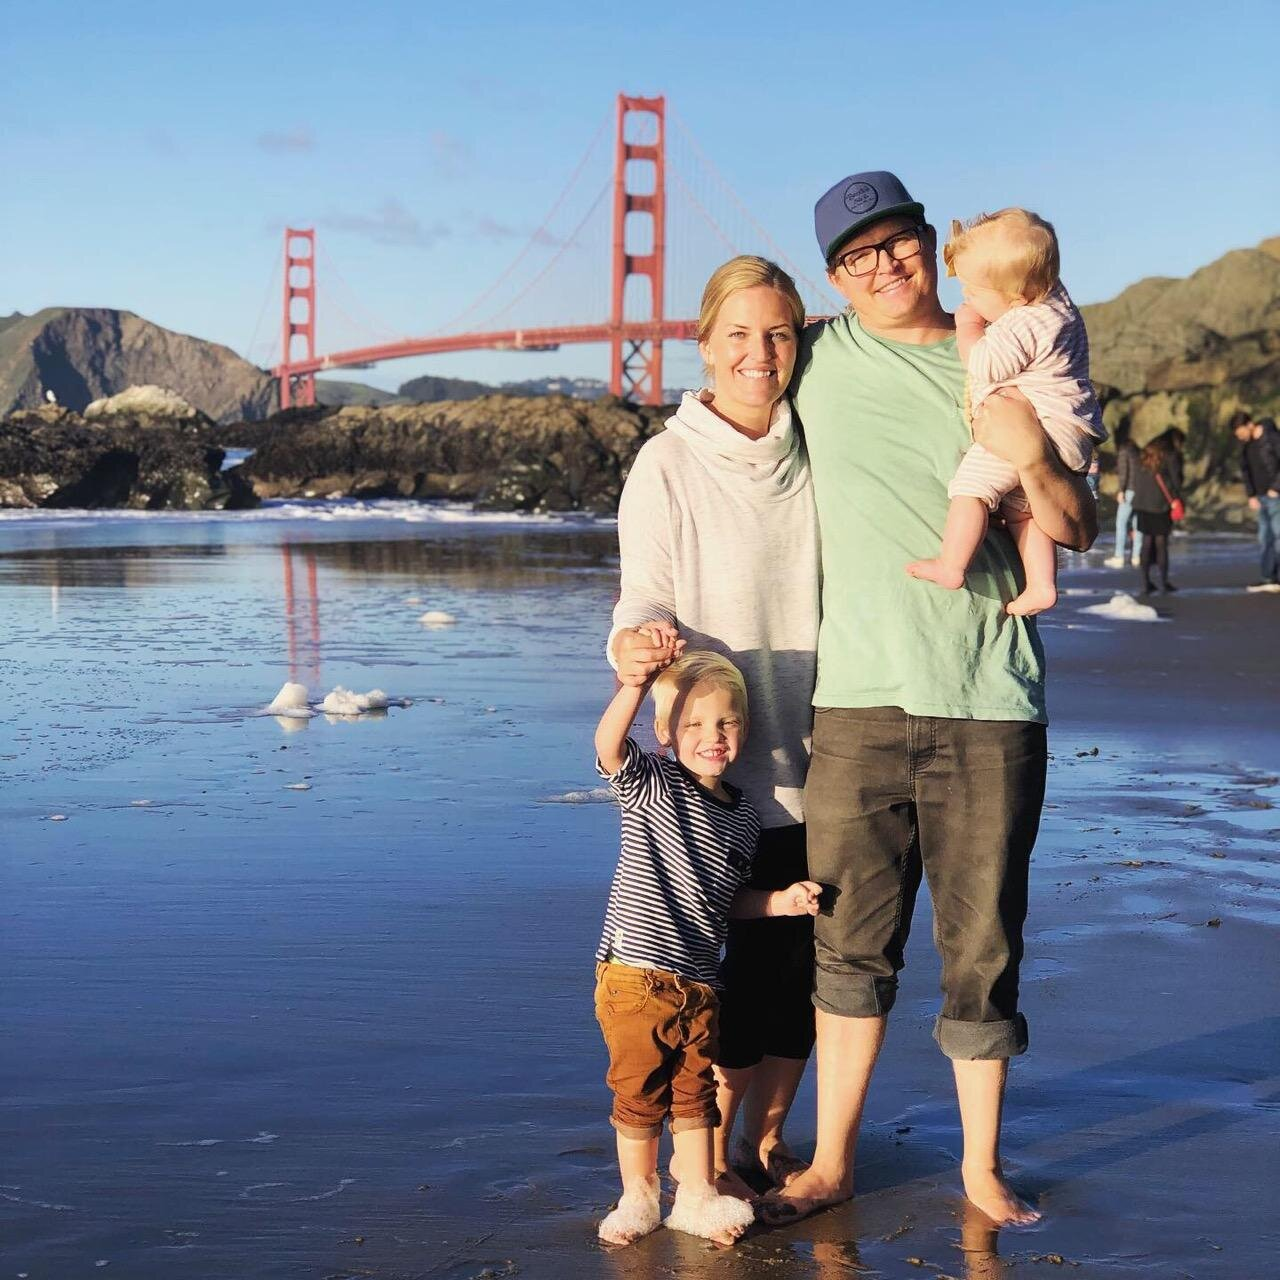 """""""Our family enjoyed a perfect day in the city.""""  -Jeff B."""